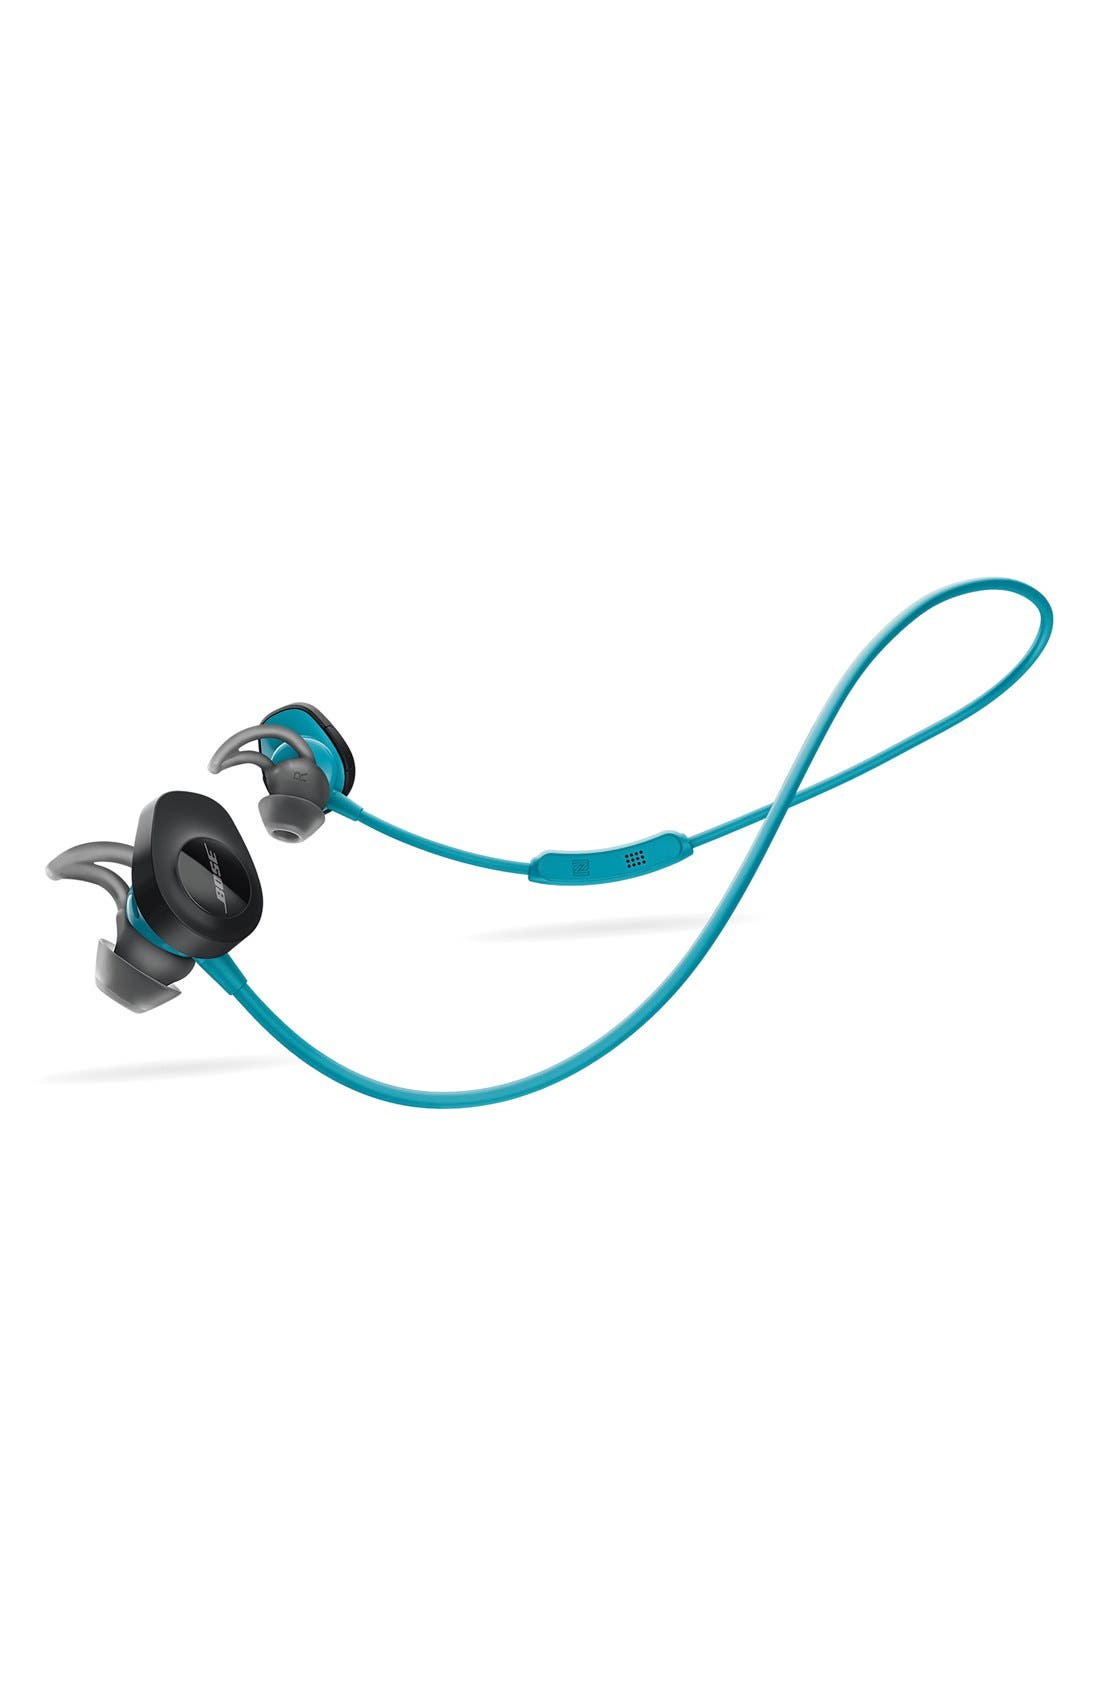 SoundSport<sup>®</sup> Wireless Headphones,                             Alternate thumbnail 8, color,                             AQUA